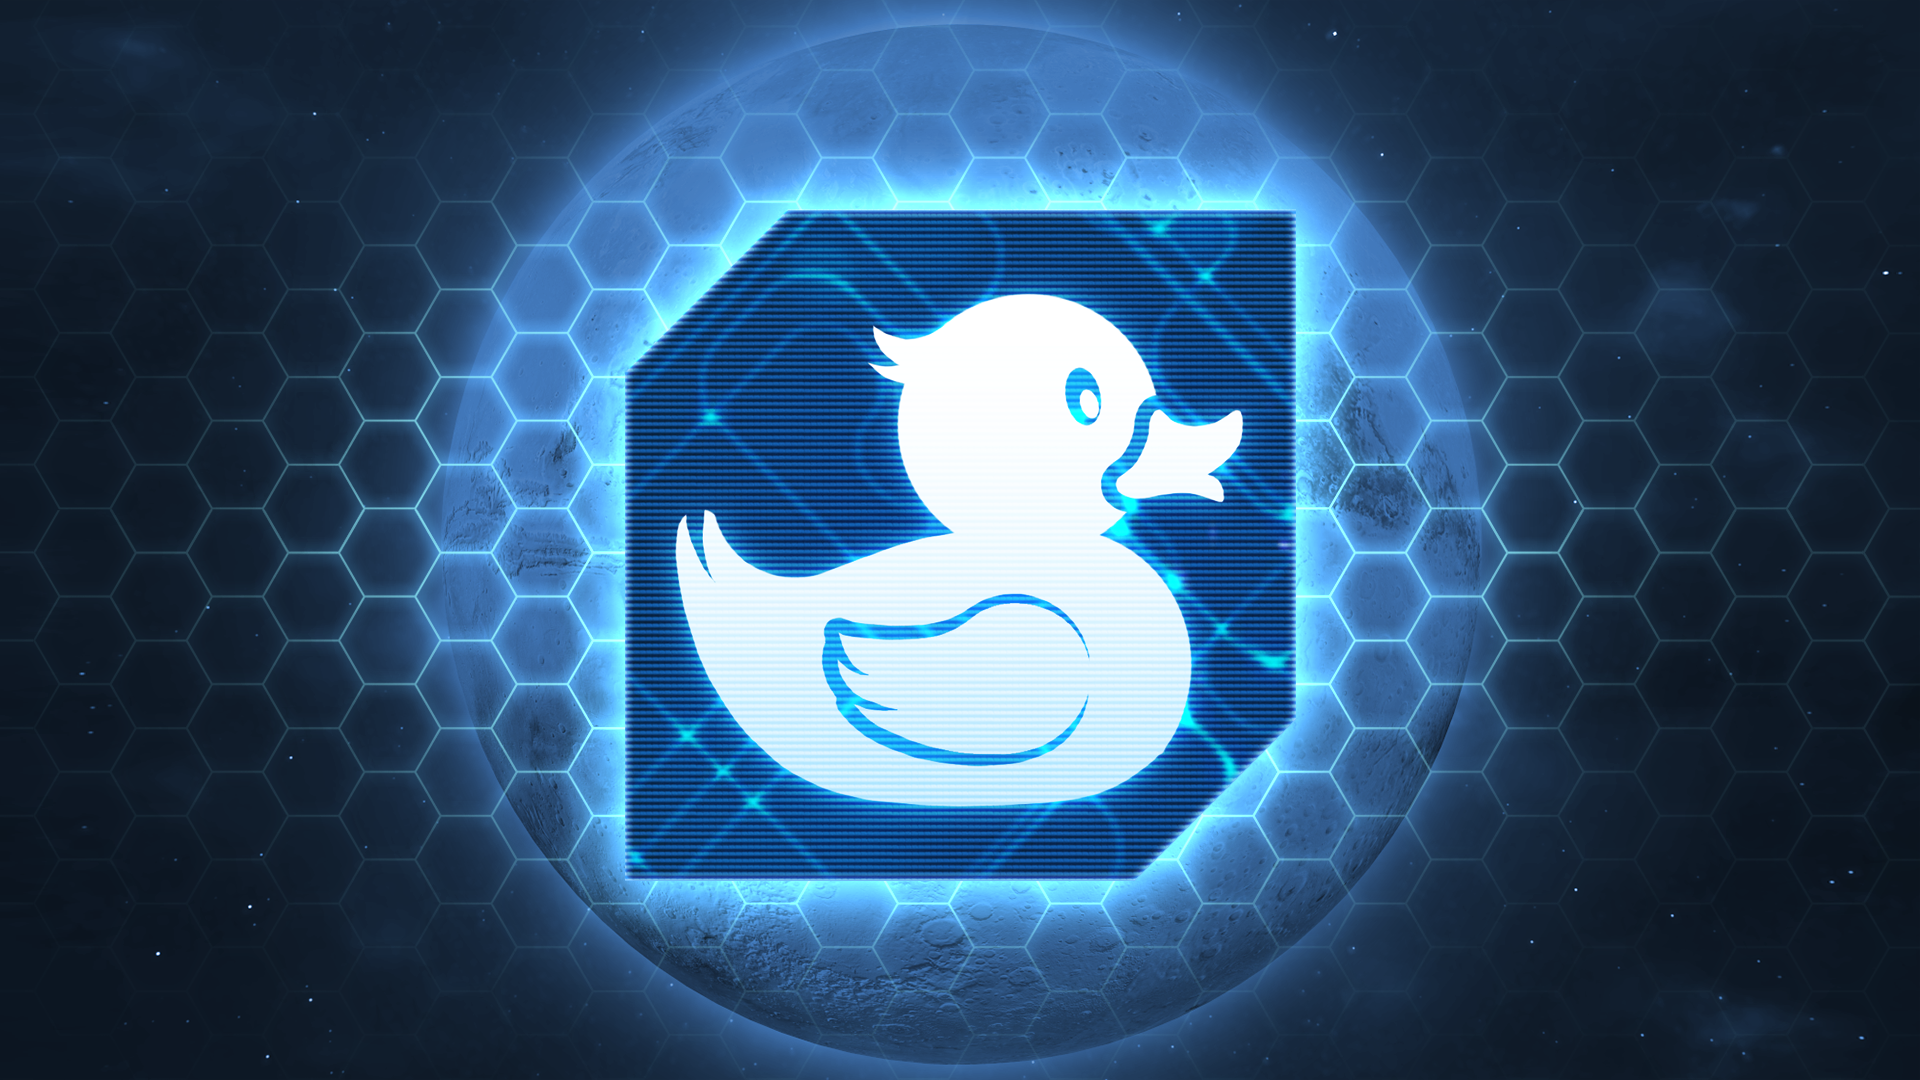 Icon for Now we need ducks